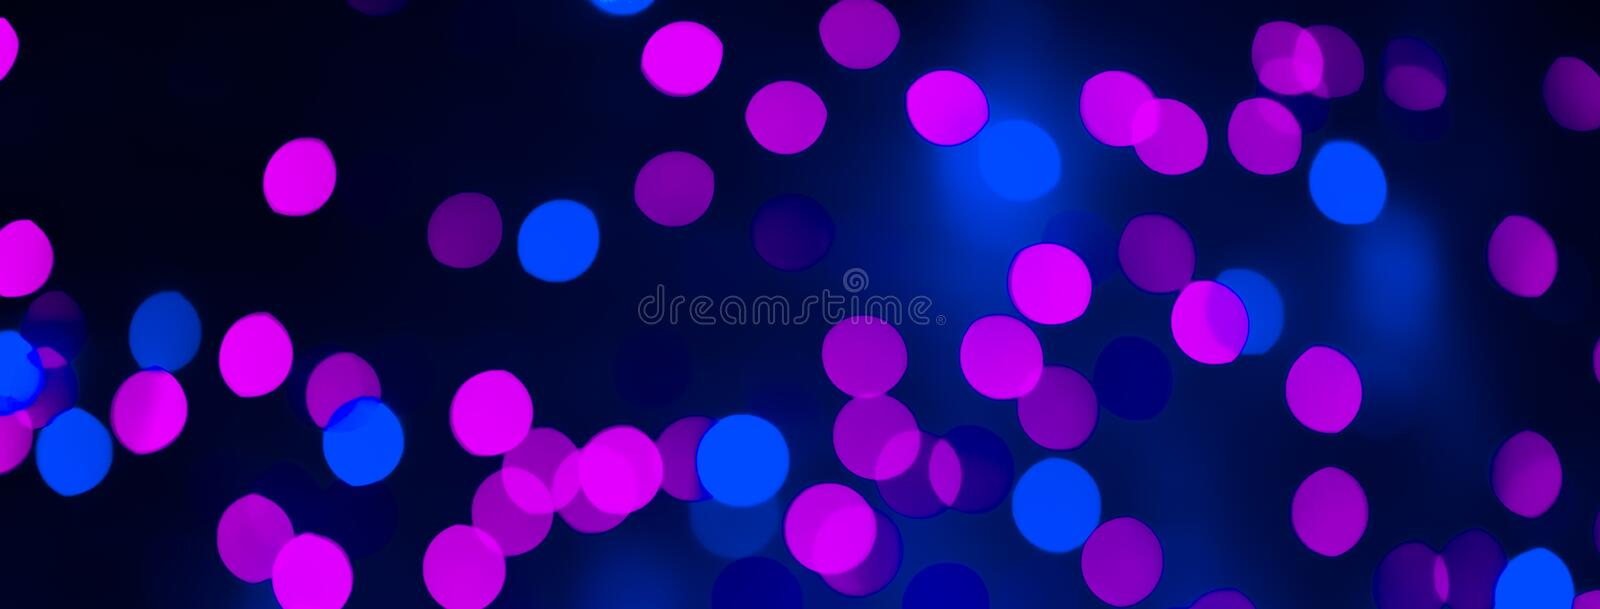 Beautiful background with bright pink and blue bokeh lightse. Beautiful background with bright pink and blue bokeh lights. Decorative Holiday Texture. Backdrop stock images